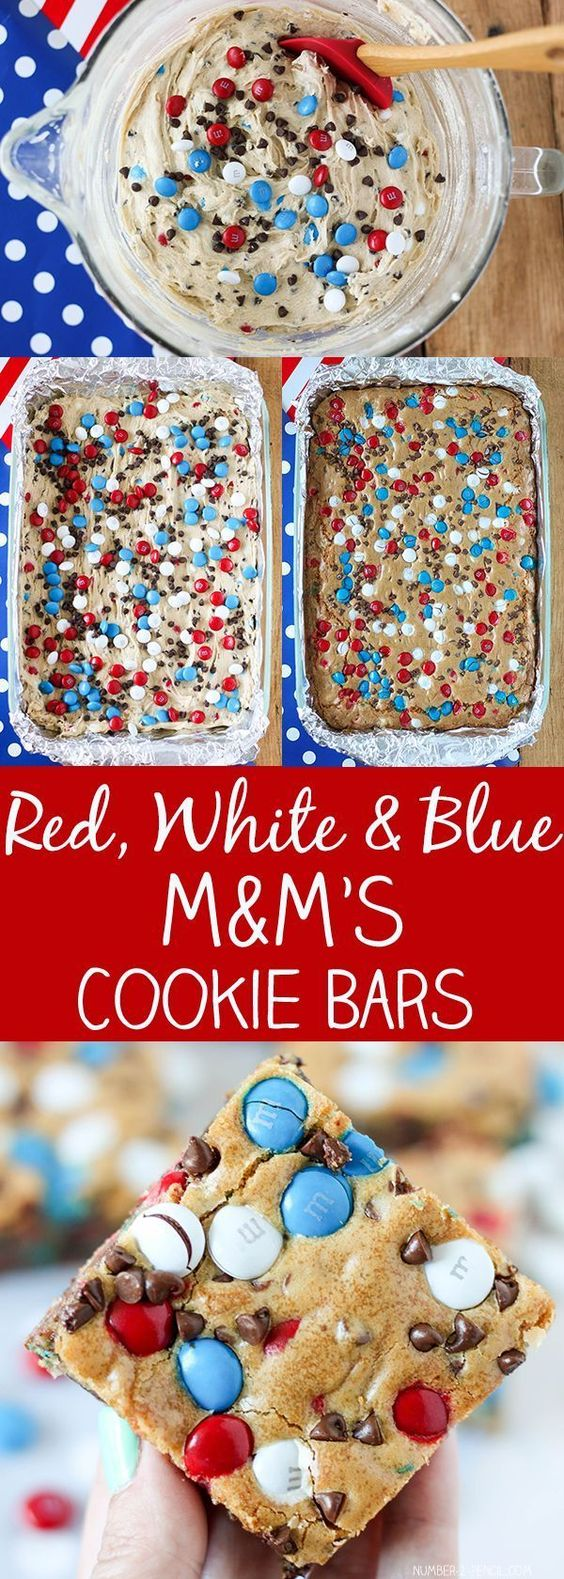 Patriotic Red White and Blue M&M'S Cookie Bars for 4th of July